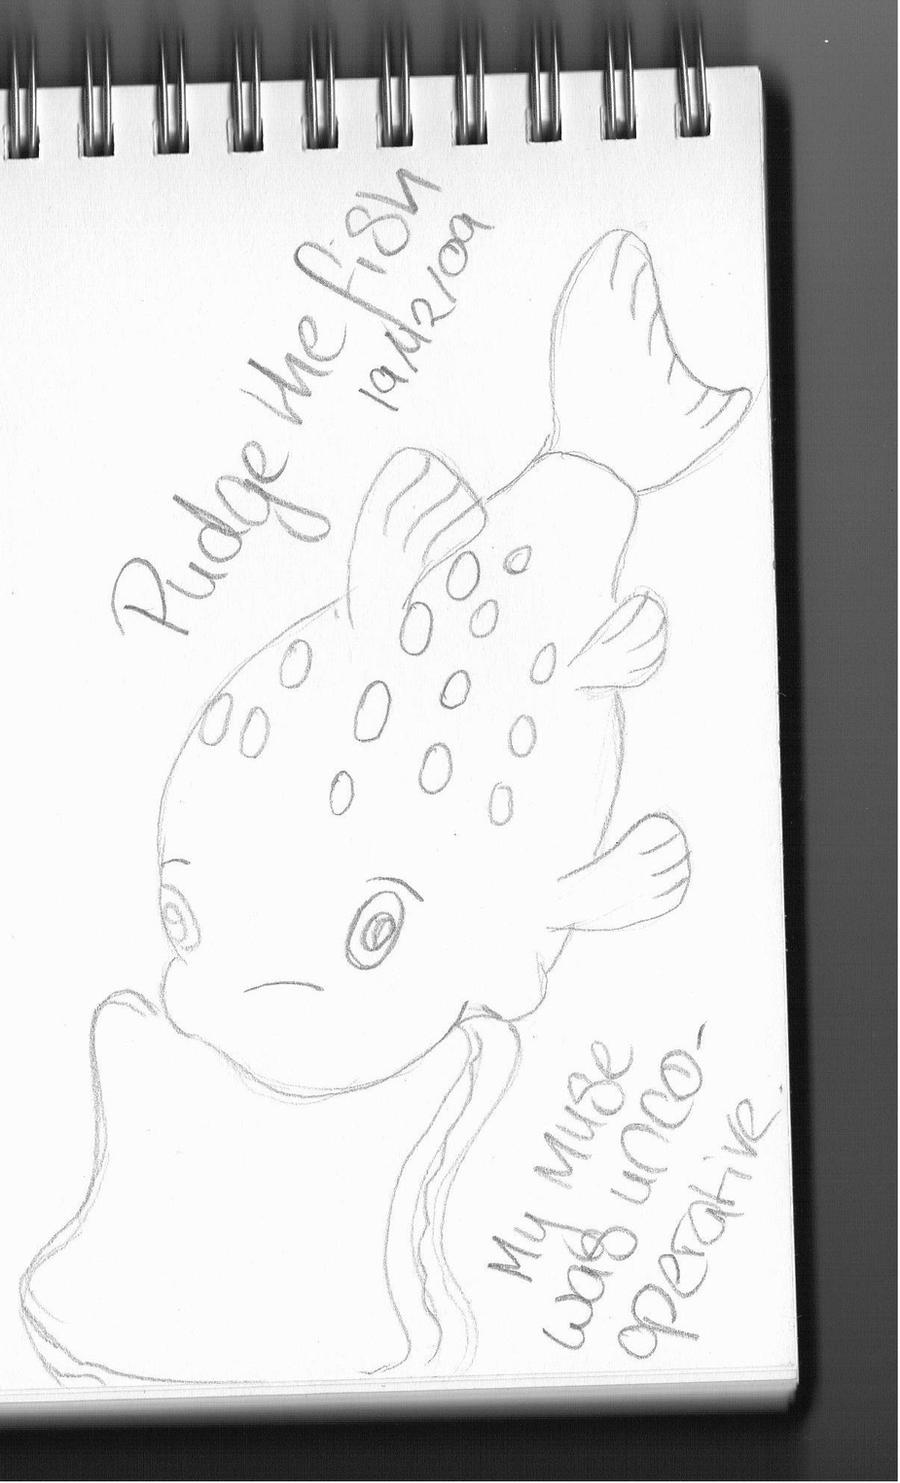 Pudge the fish by lannysaurus on deviantart for Pudge the fish